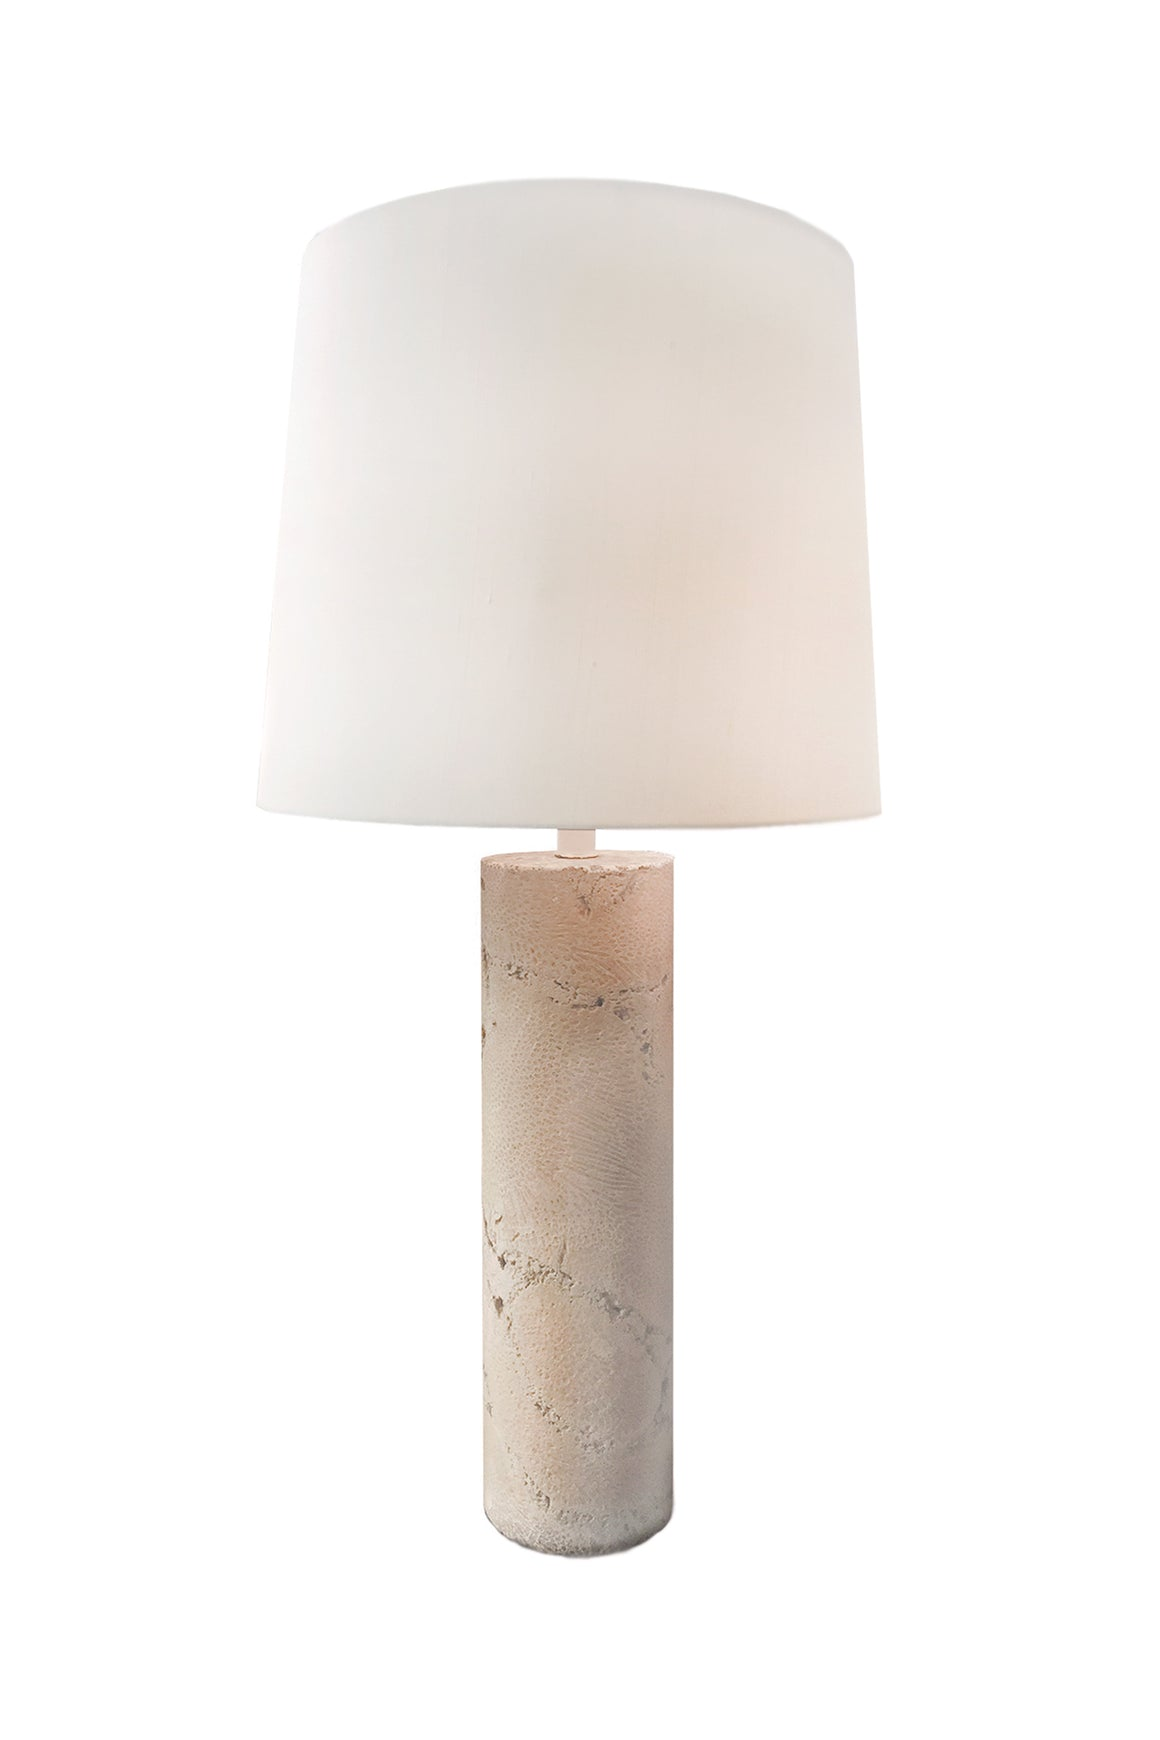 Midcentury Modern Coral Column Table Lamp